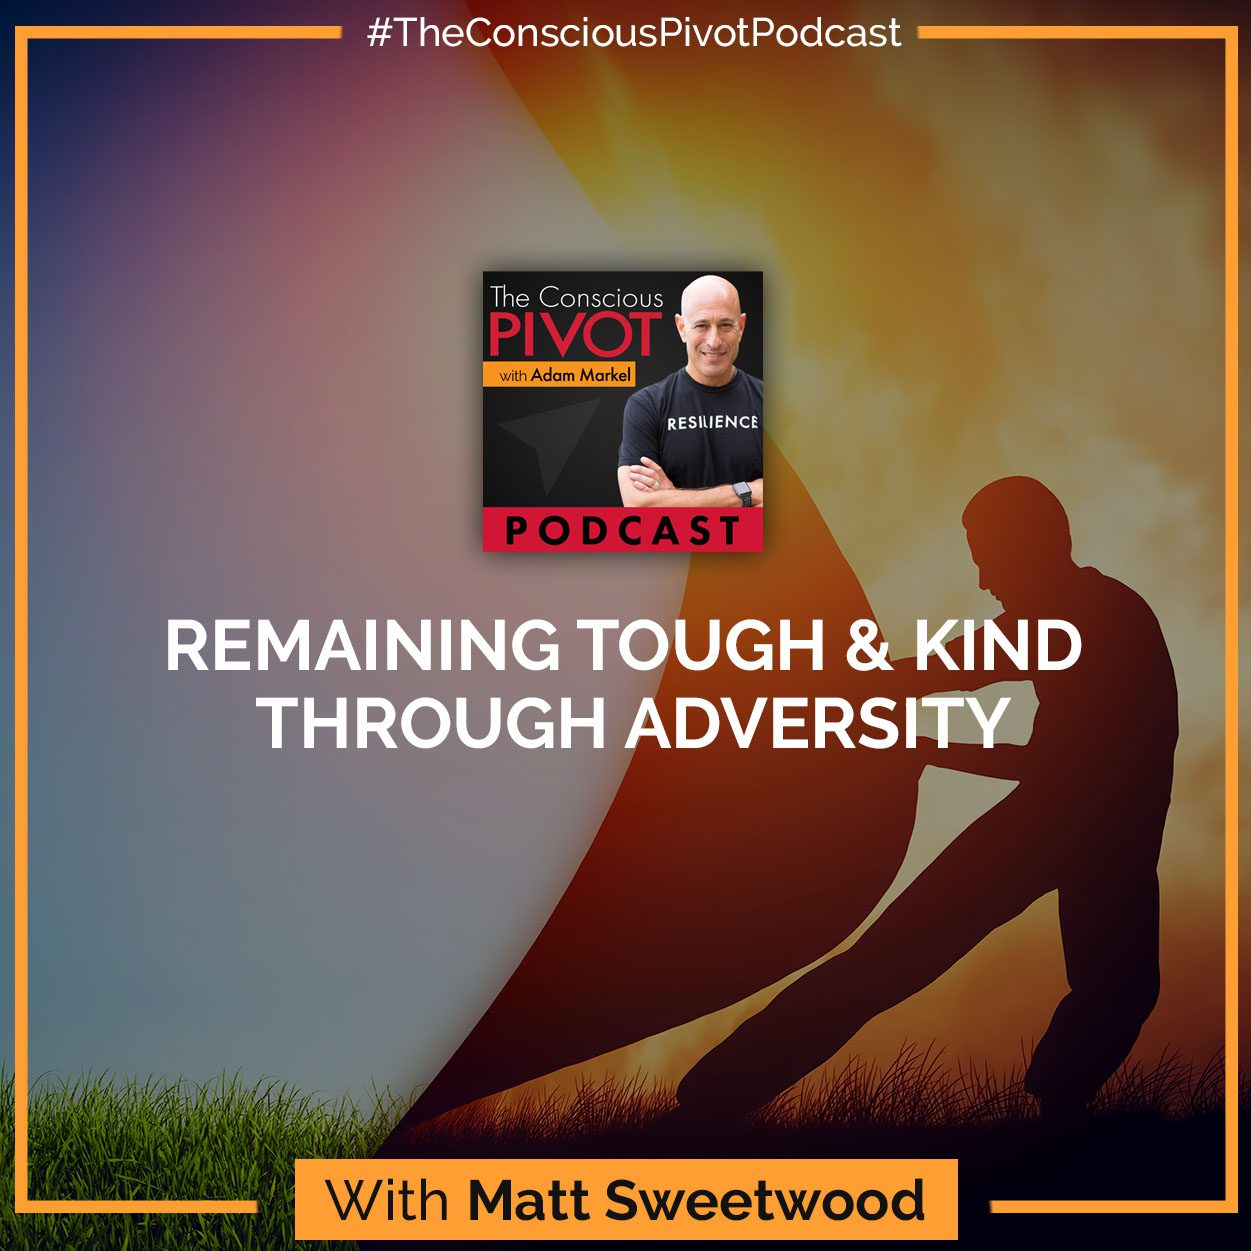 Remaining Tough & Kind Through Adversity With Matt Sweetwood